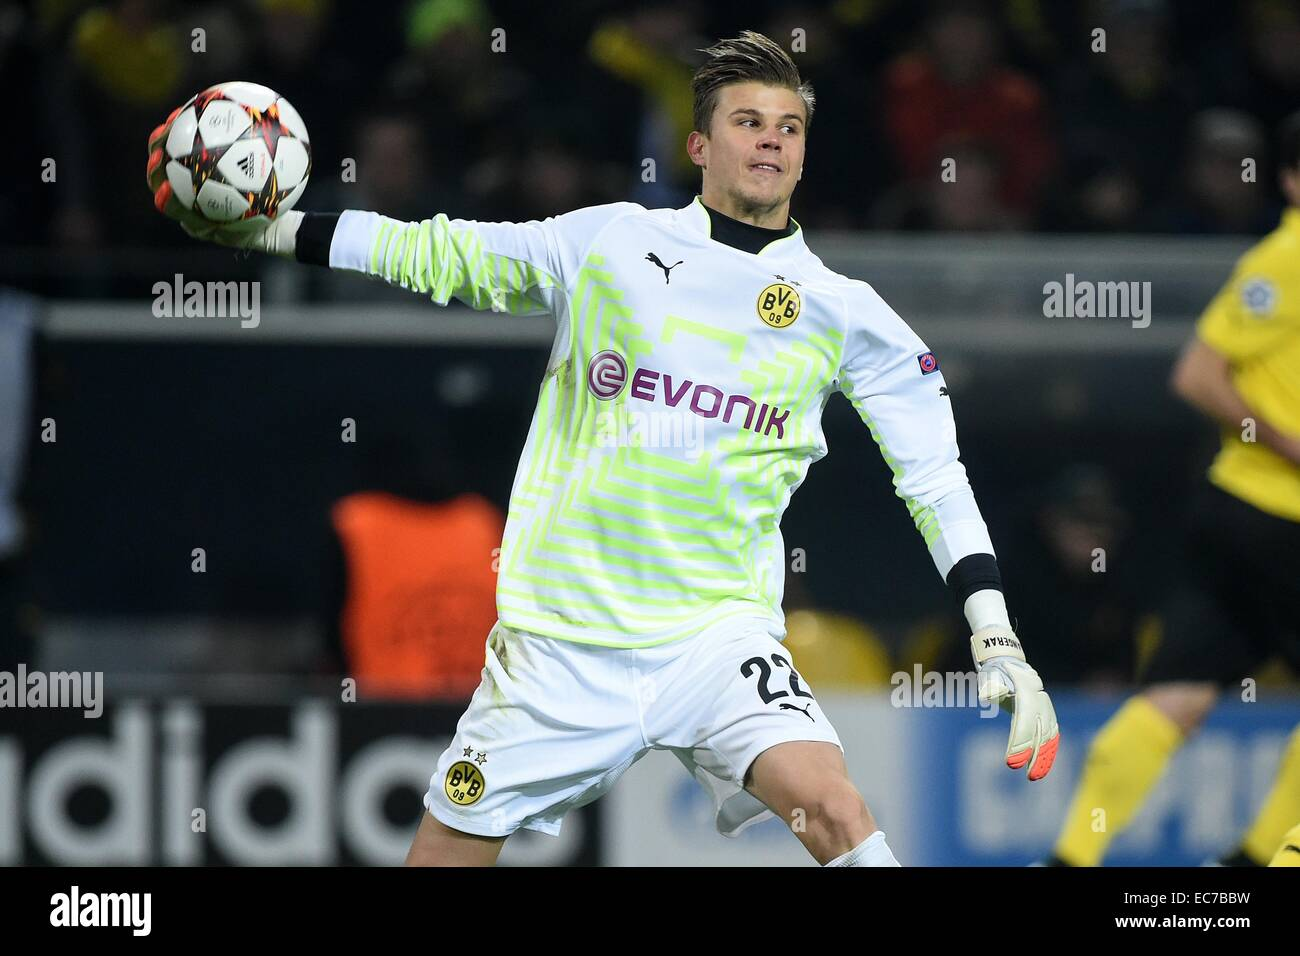 Dortmund's goalkeeper Michael Langerak in action during the Champions League Group D football match between - Stock Image